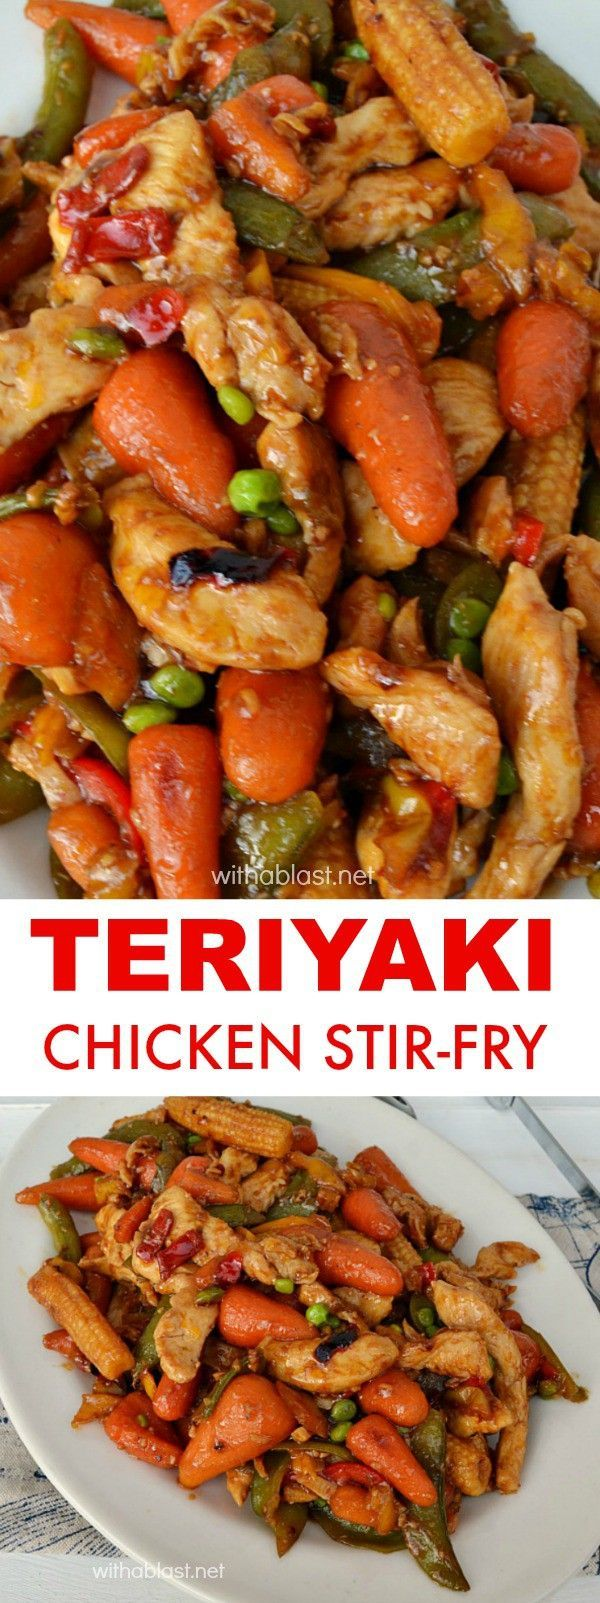 Teriyaki Chicken Stir-Fry is a quick, easy and perfect last minute dinner